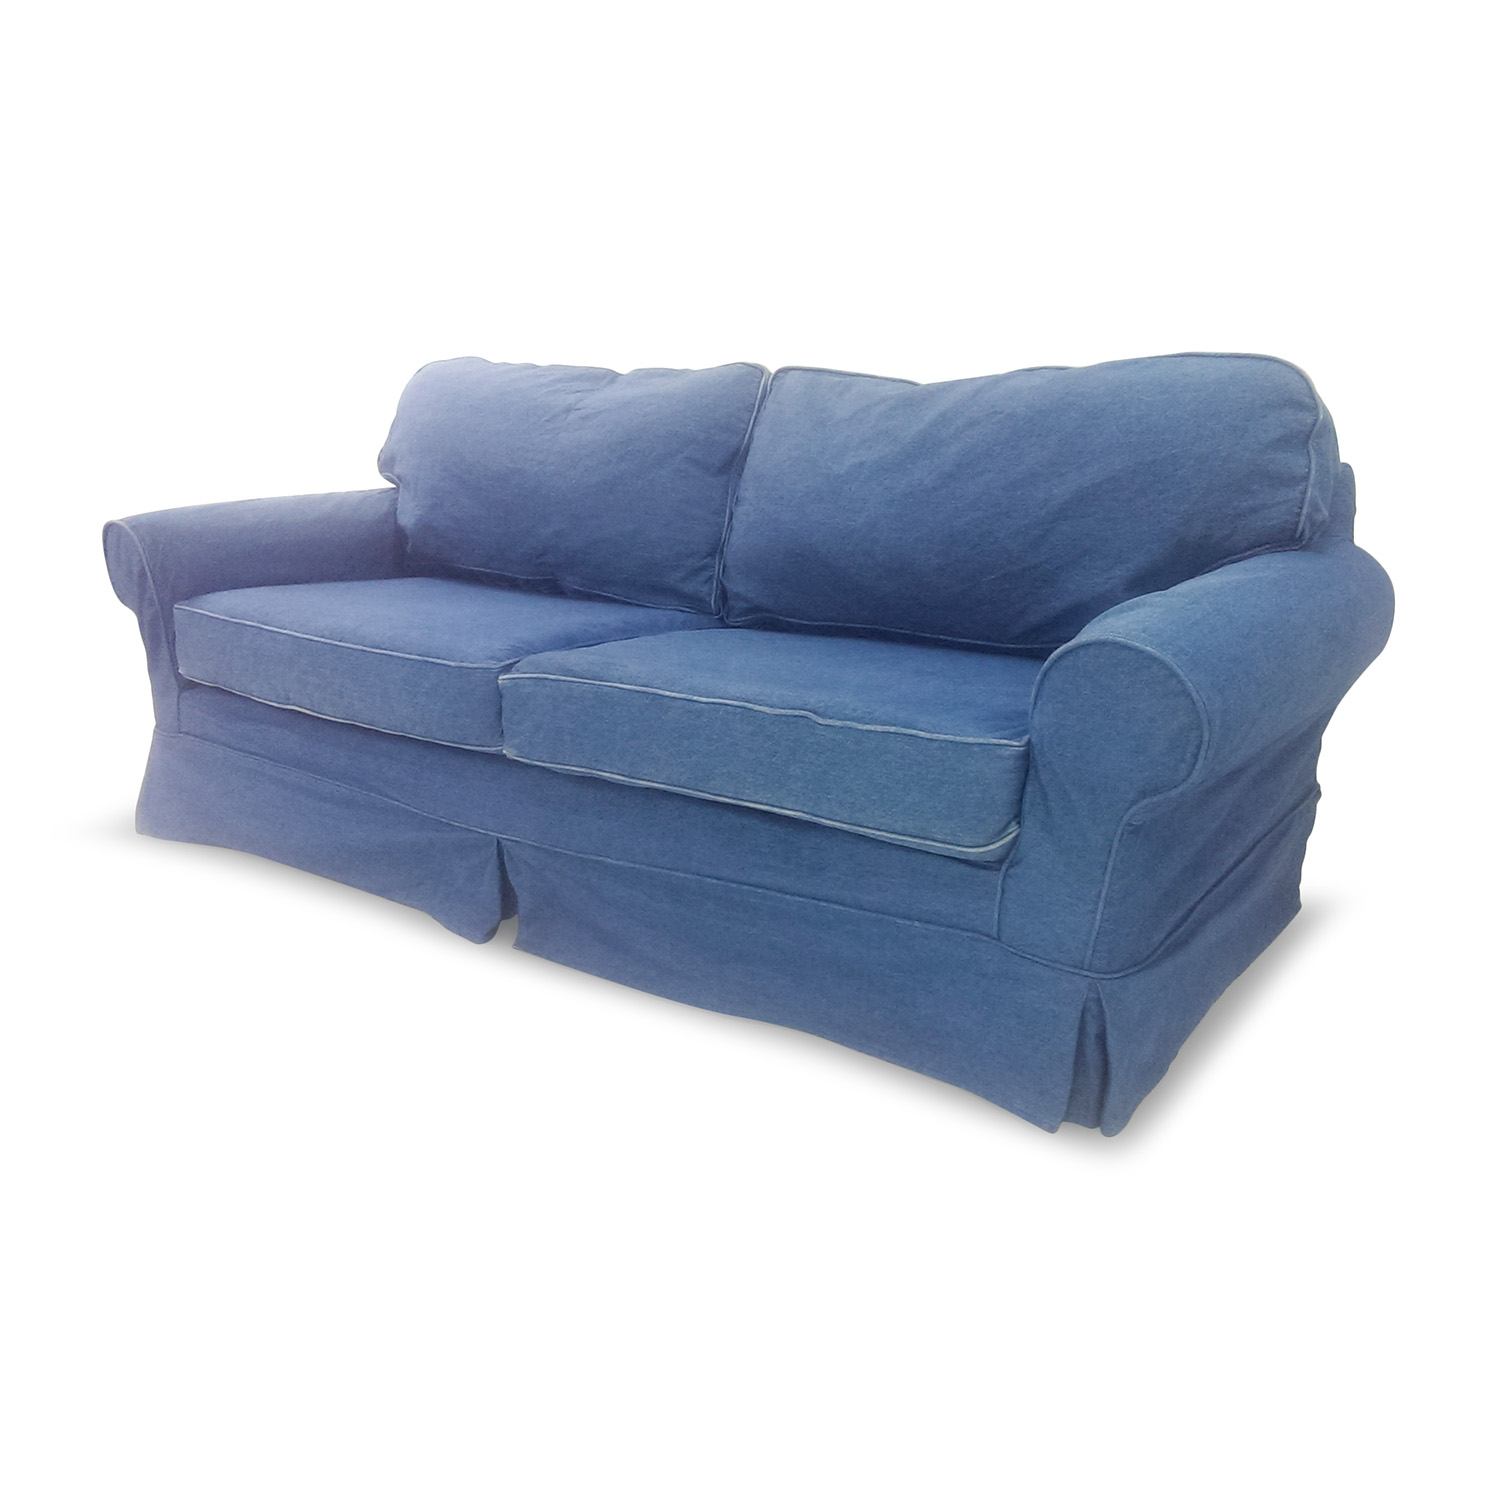 Jean sofa cover home the honoroak for Red denim sectional sofa